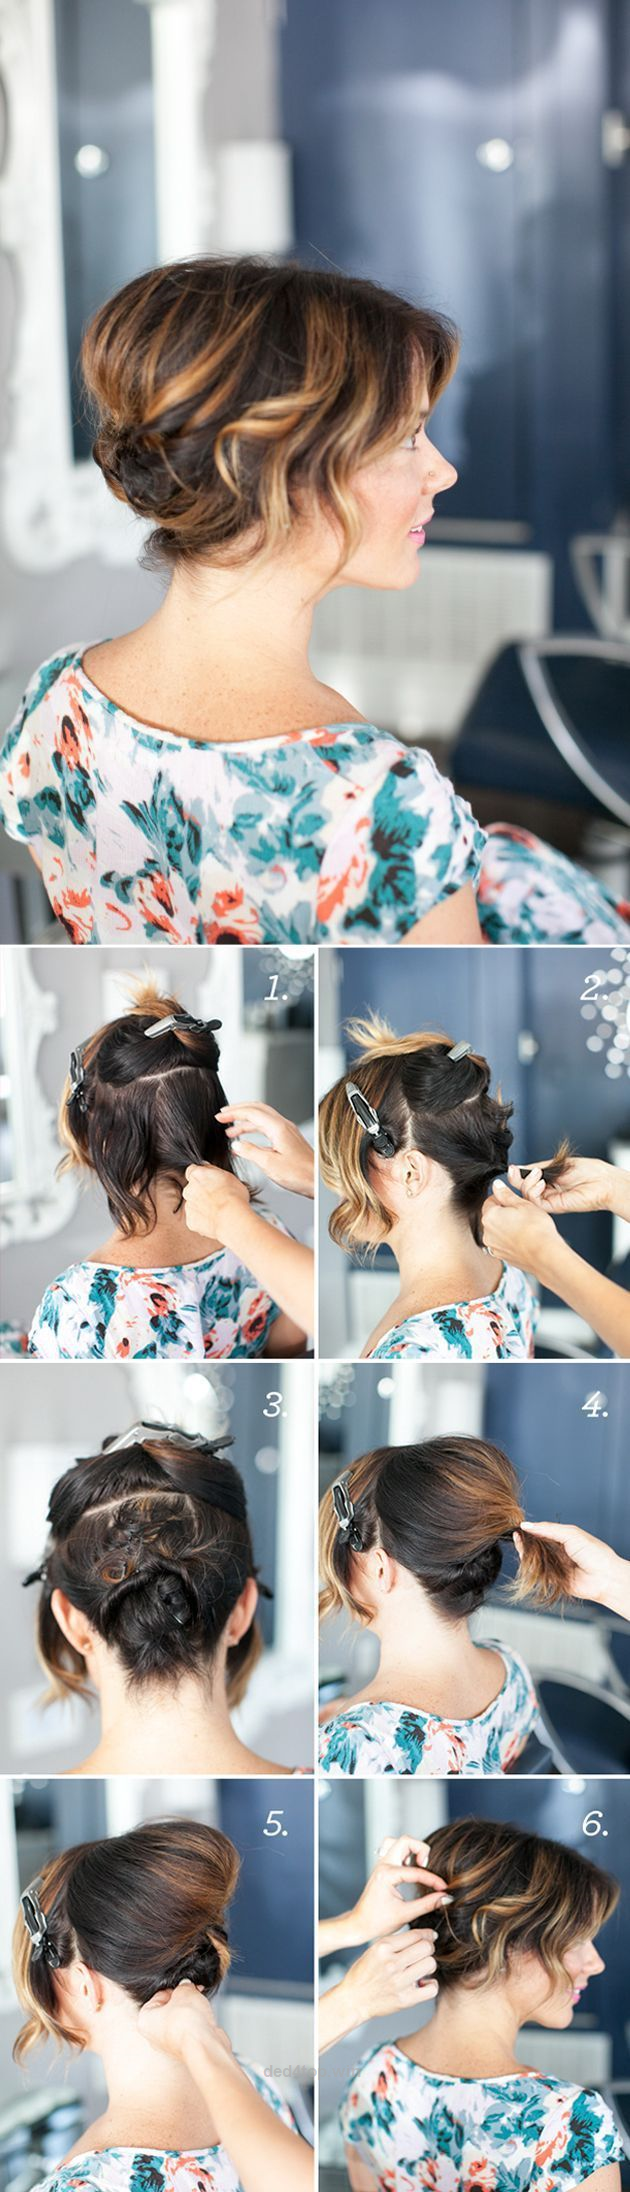 Quick updos for short hairu easy pinterest up dos and short hair